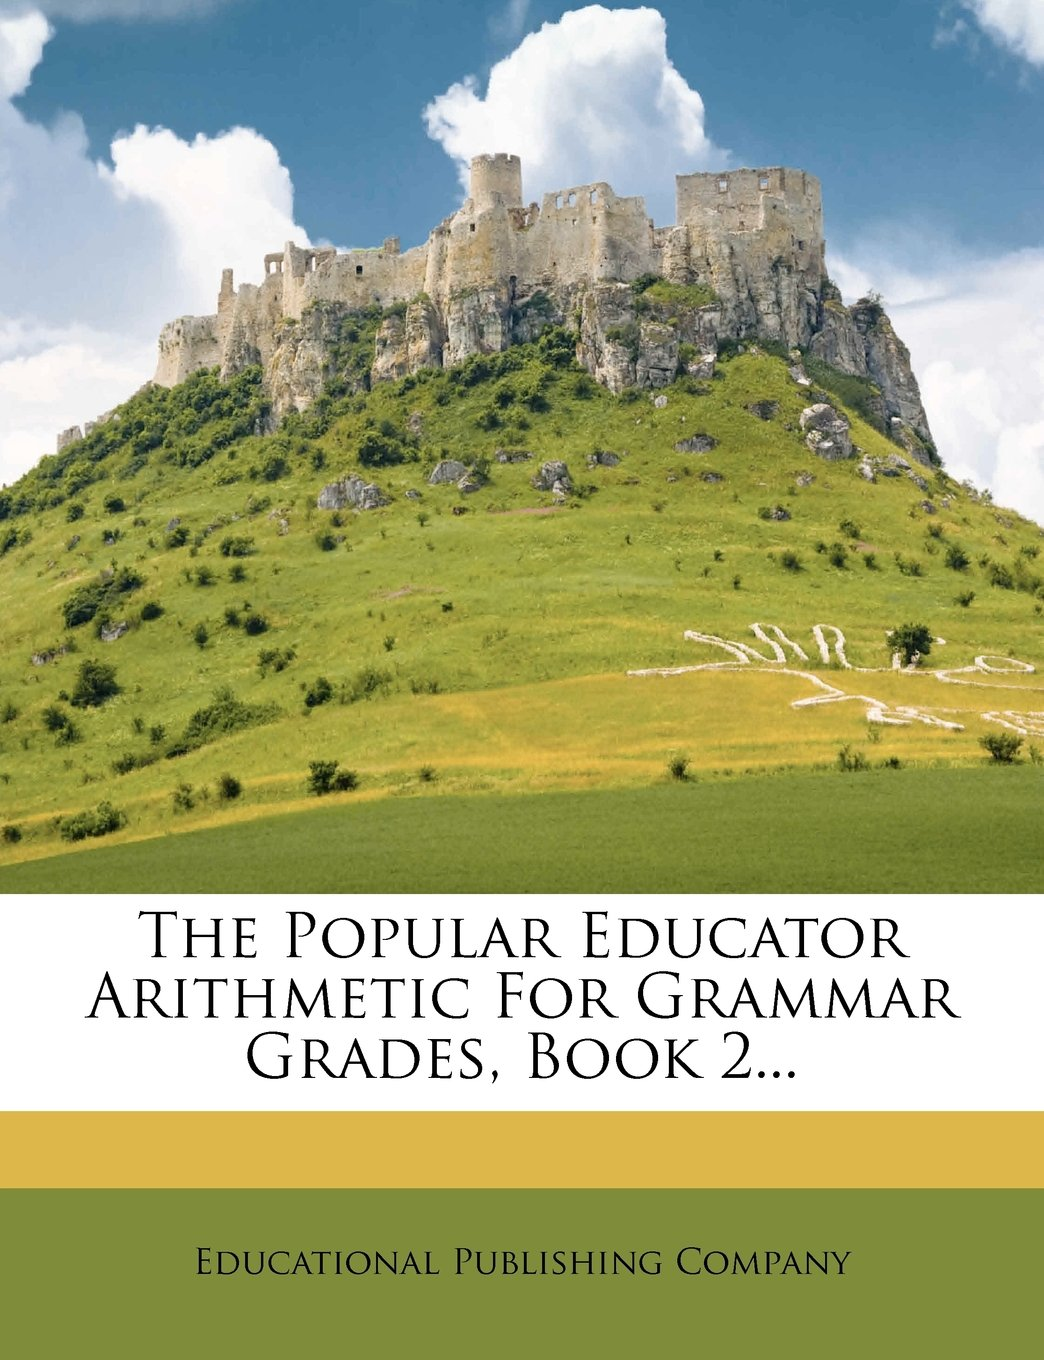 Download The Popular Educator Arithmetic For Grammar Grades, Book 2... ebook